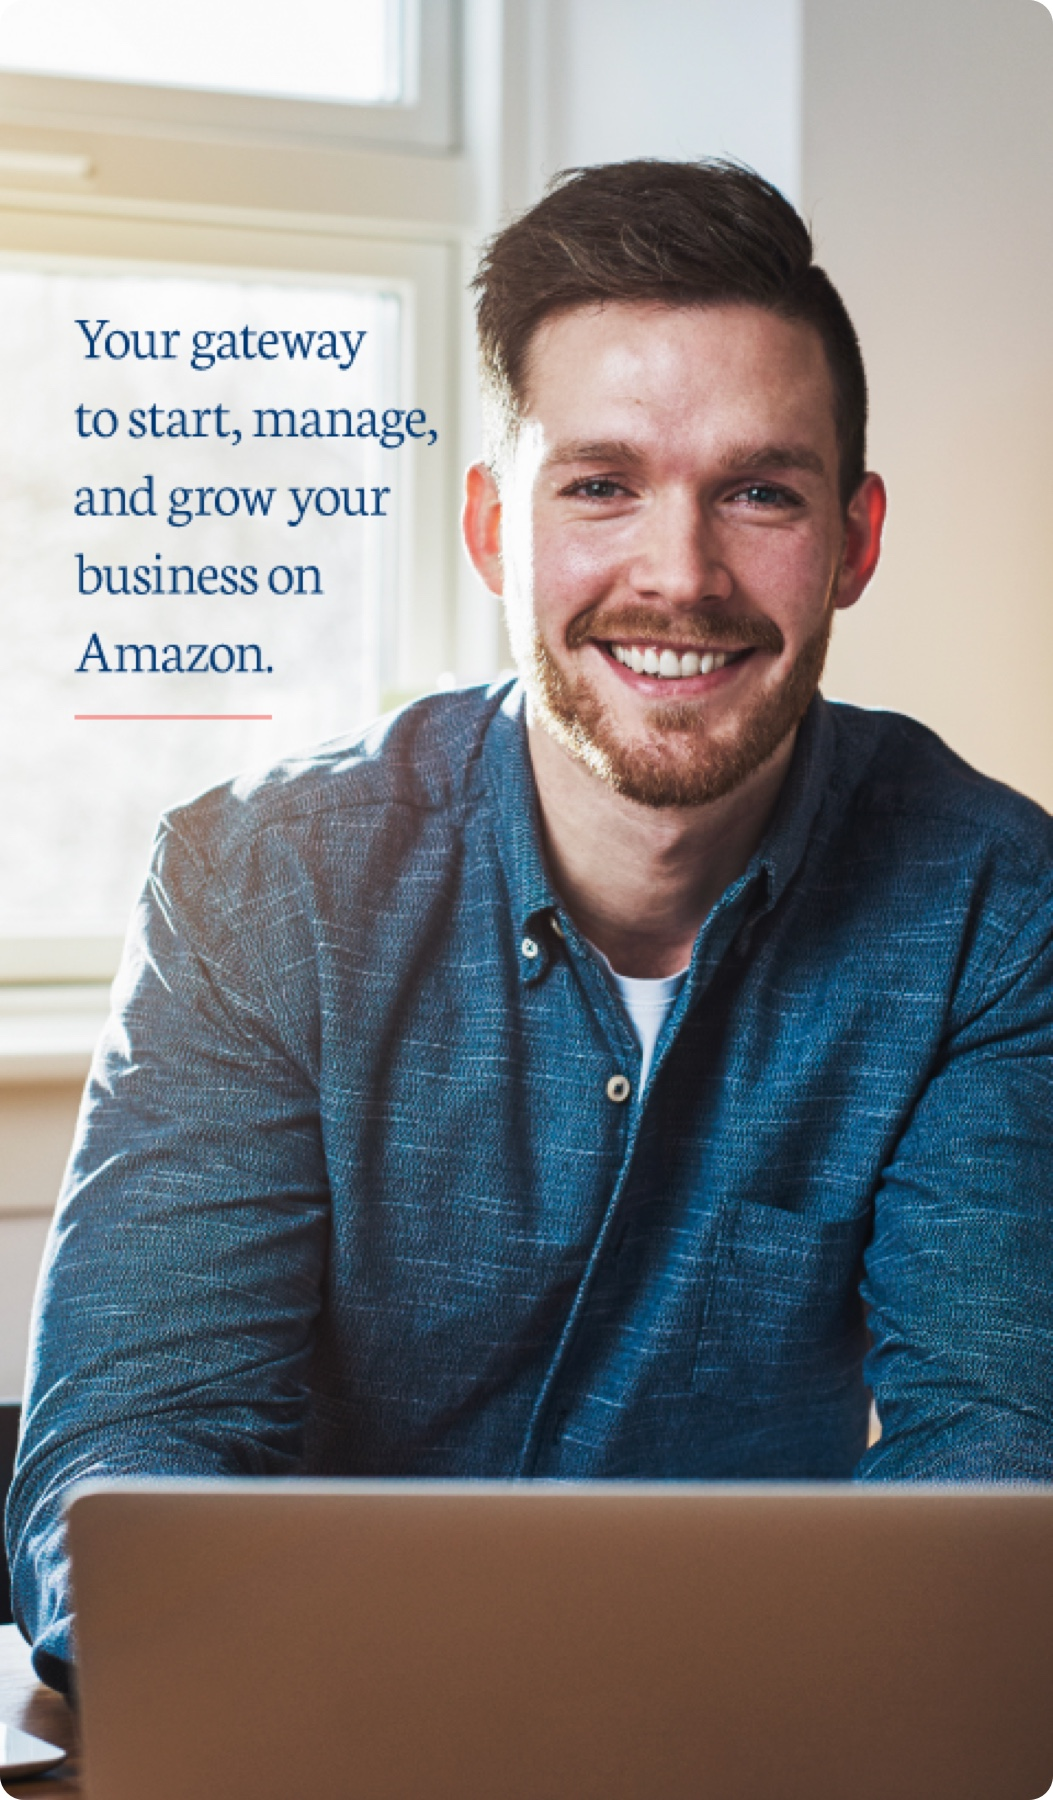 Your gateway to start, manage, and grow your business on Amazon